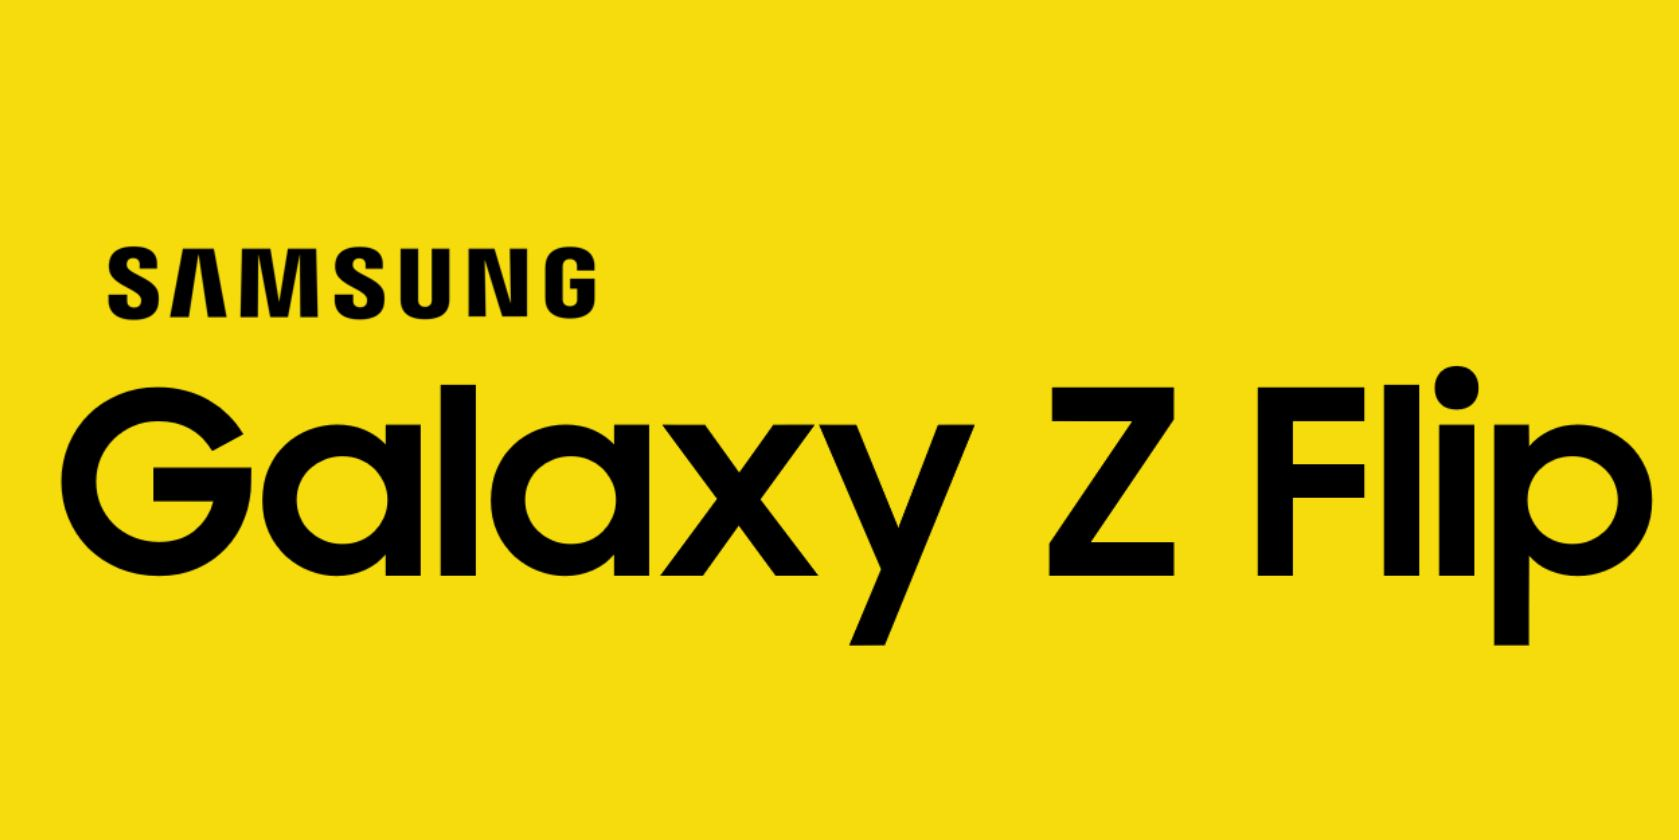 Galaxy Z Flip is the name of Samsung's next folding phone 1